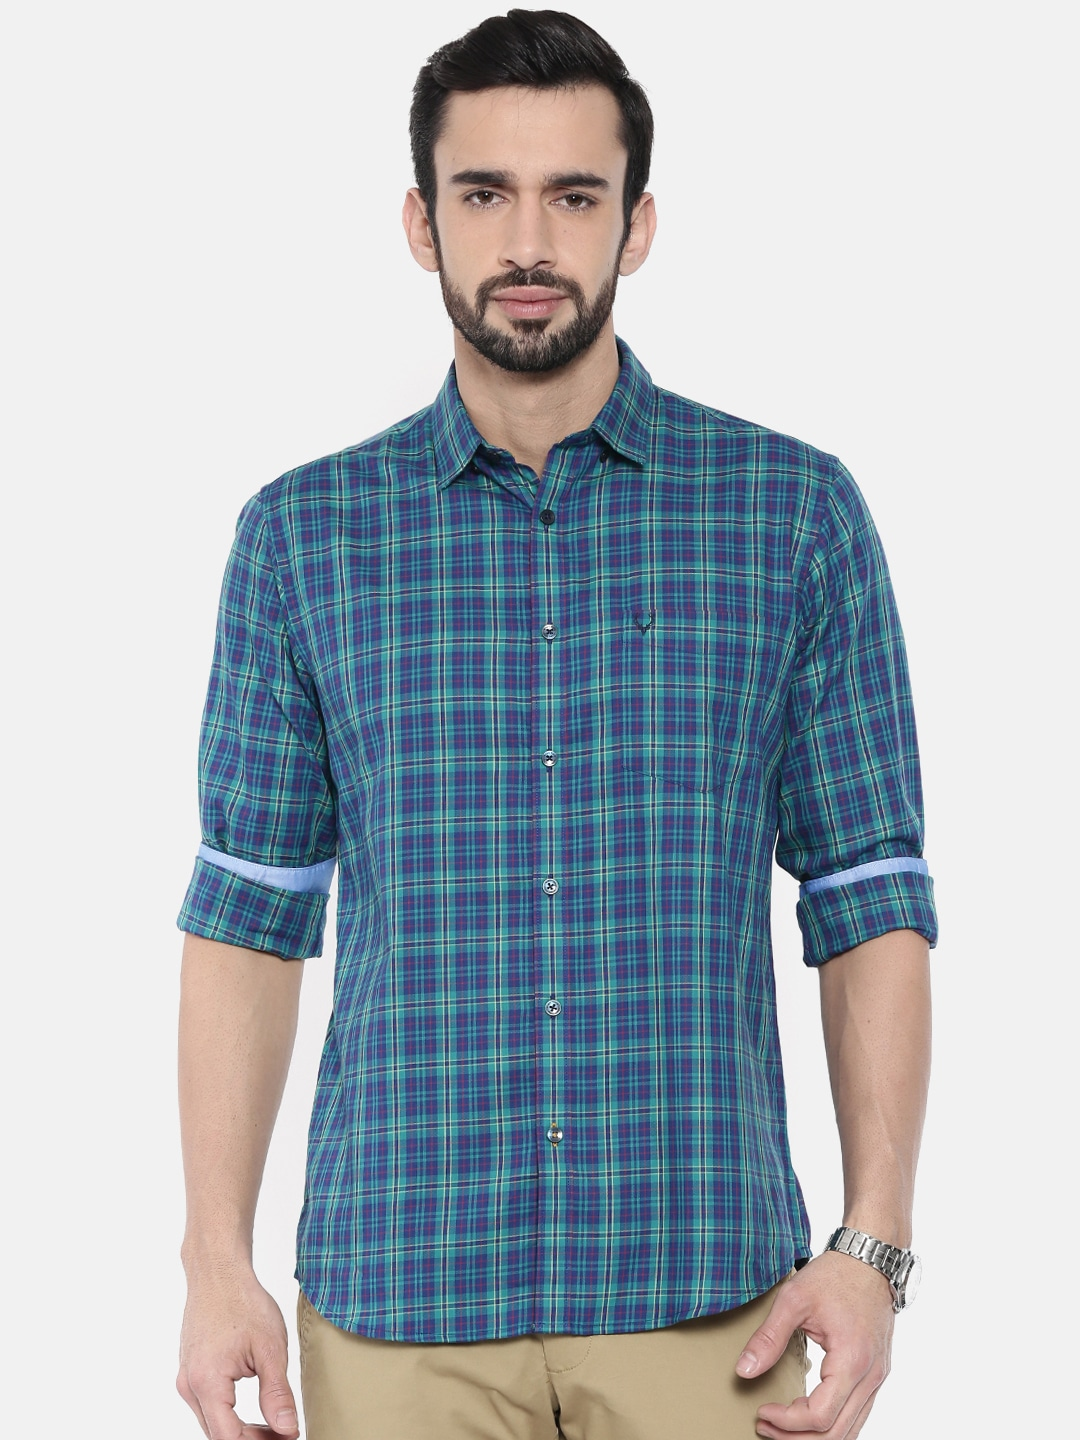 a7aaac88 Solly Shirts Tops - Buy Solly Shirts Tops online in India